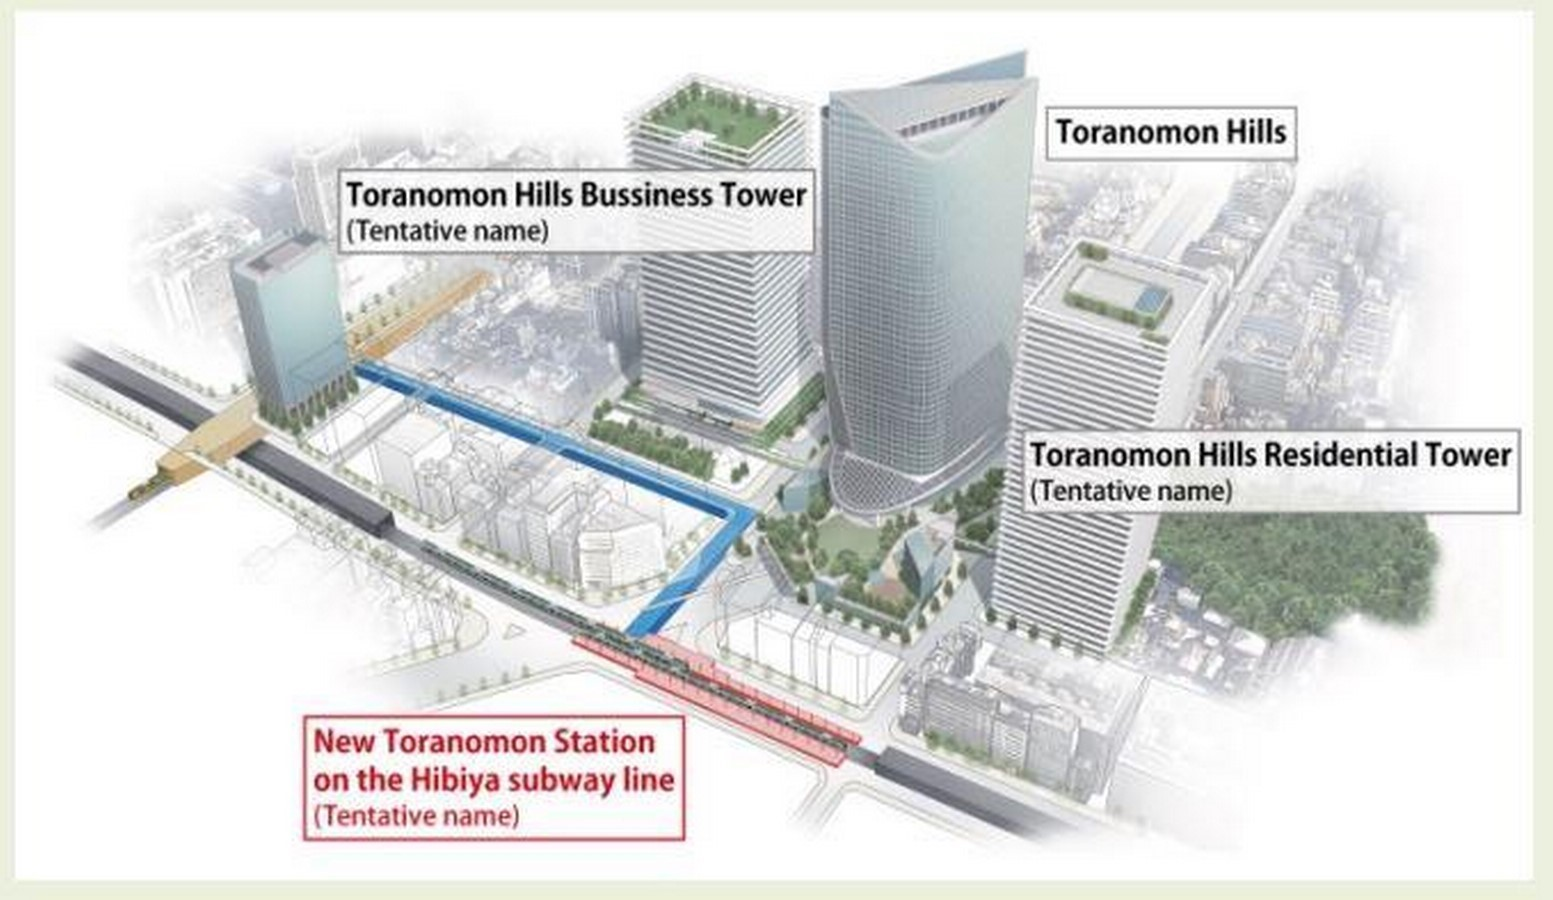 Toranomon Hills Mori Tower by OMA: The First Tower in Tokyo - Sheet4